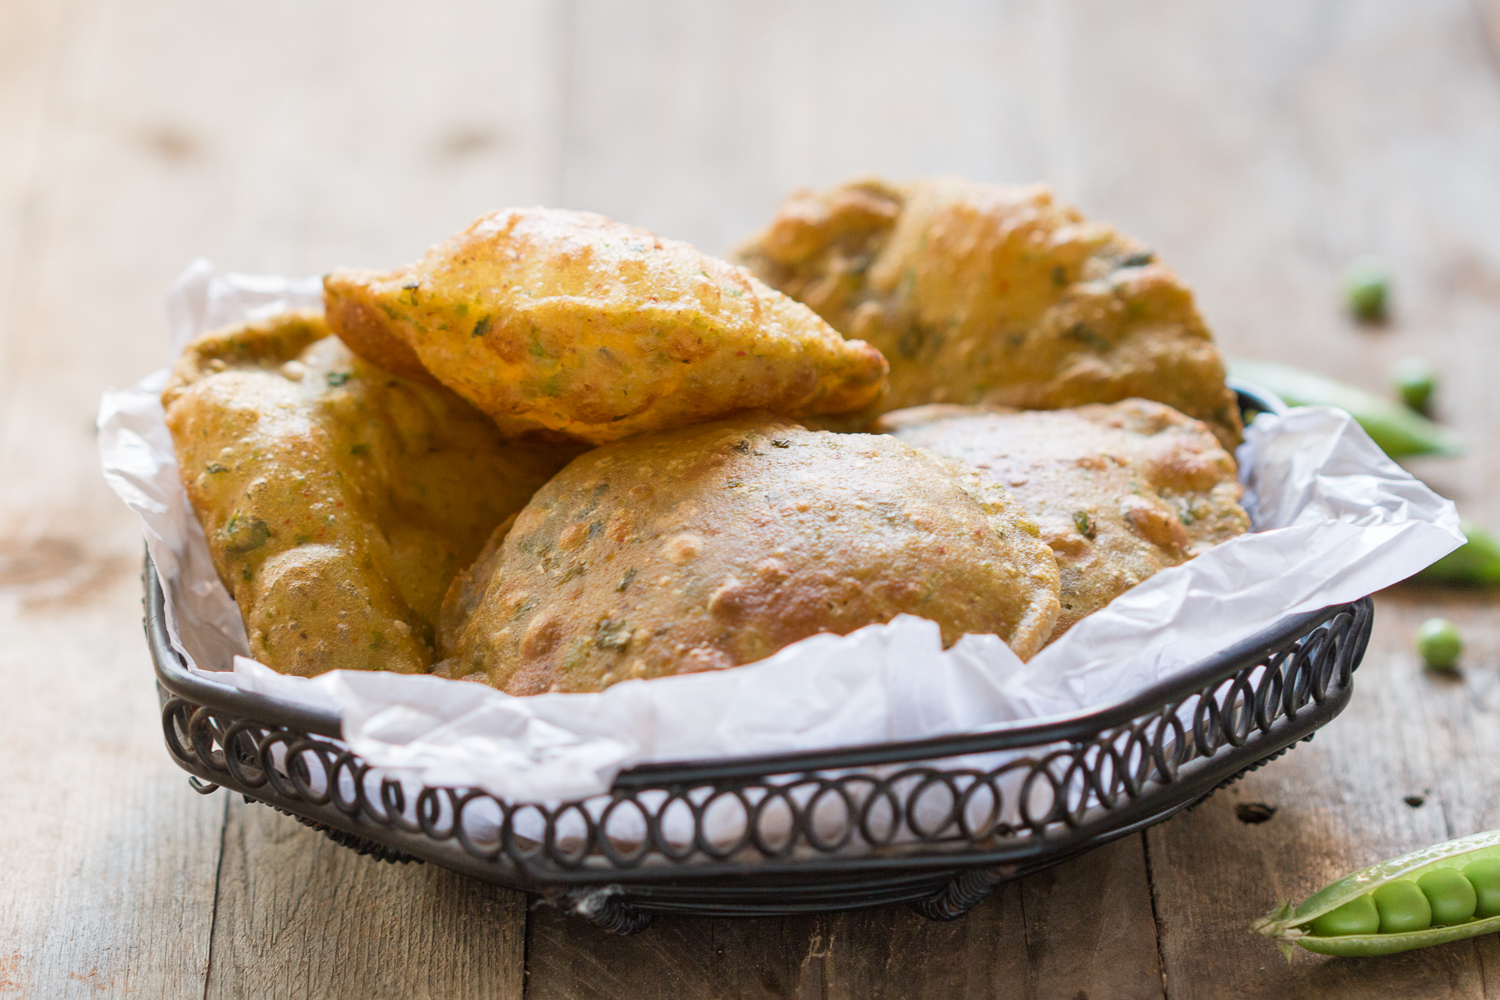 Matar Ki Puri (Crispy Puffed Indian Bread With Peas)